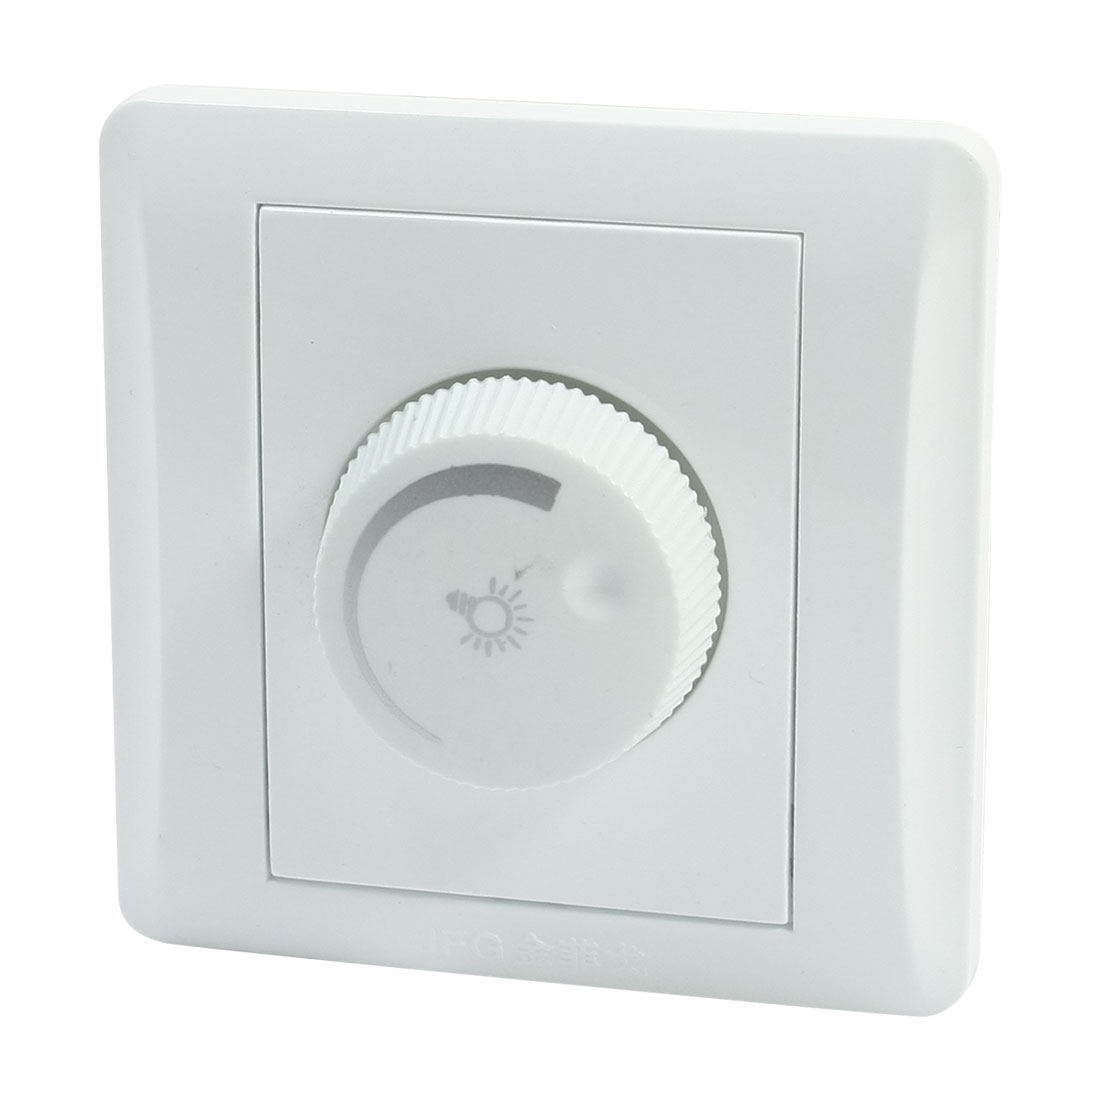 Rotary Switch Single Pole Light Intensity Control White Light Dimmer Switch AC 150-250V